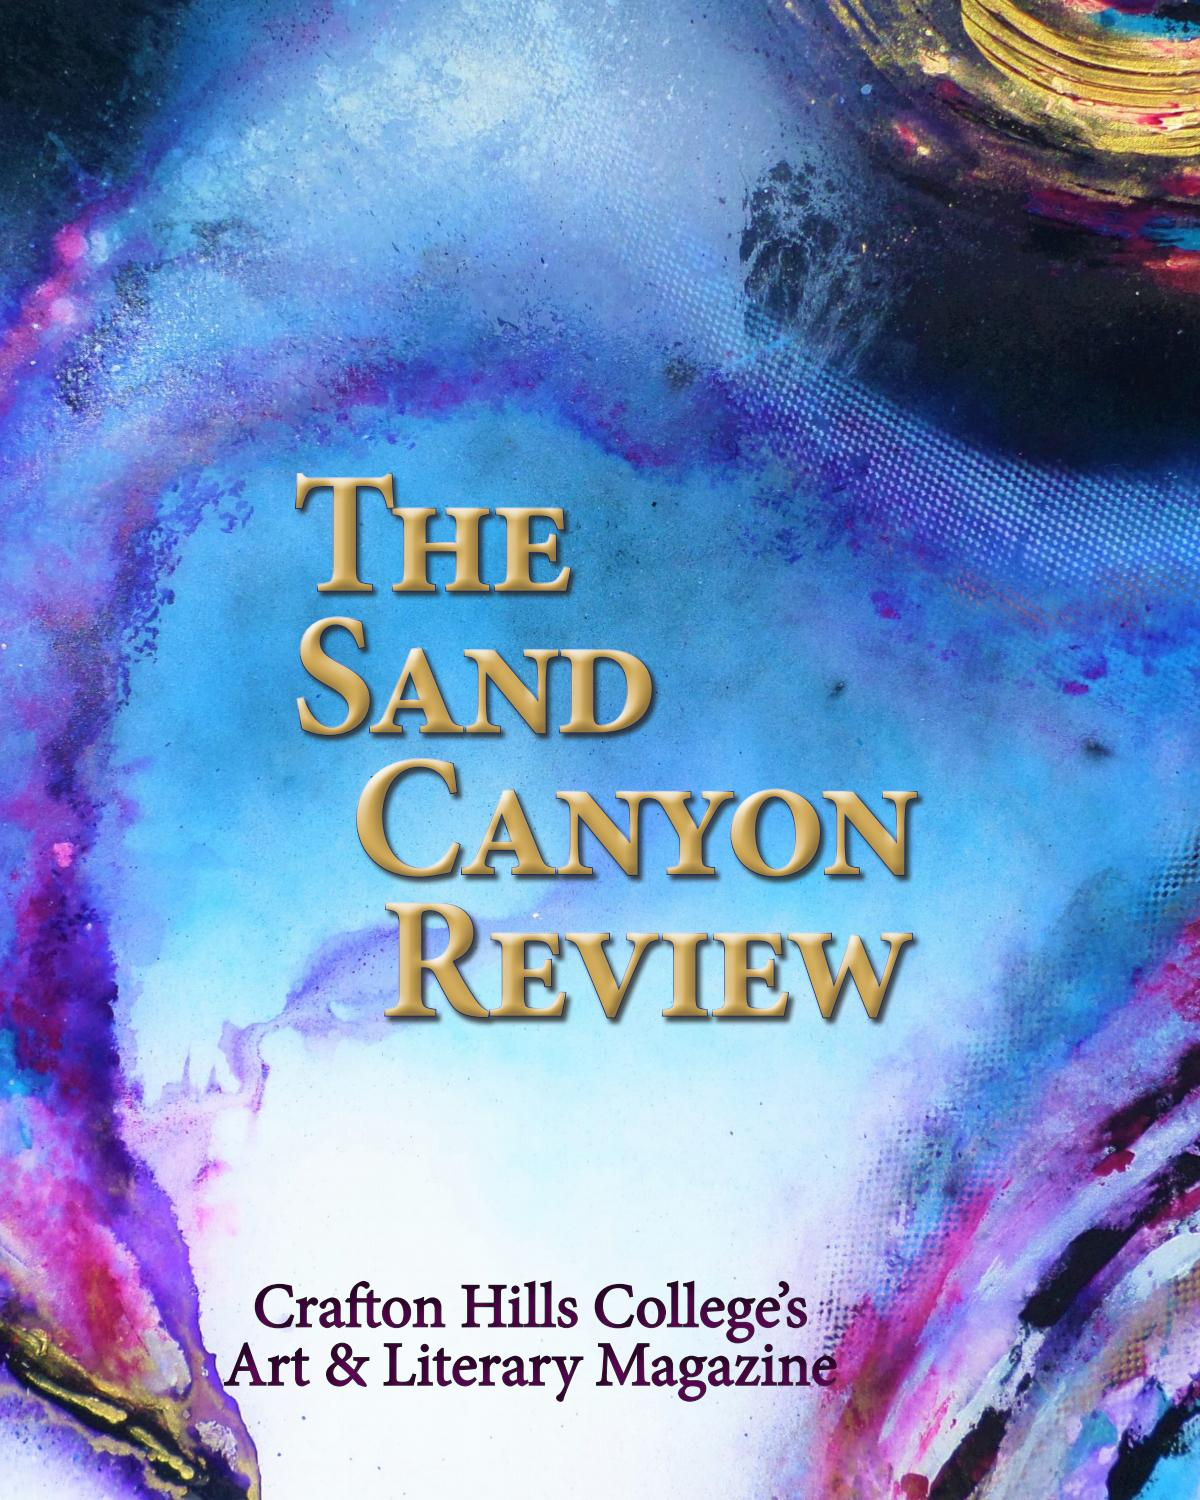 Faire Sa Pinata Soi Meme the sand canyon reviewthe sand canyon review - issuu